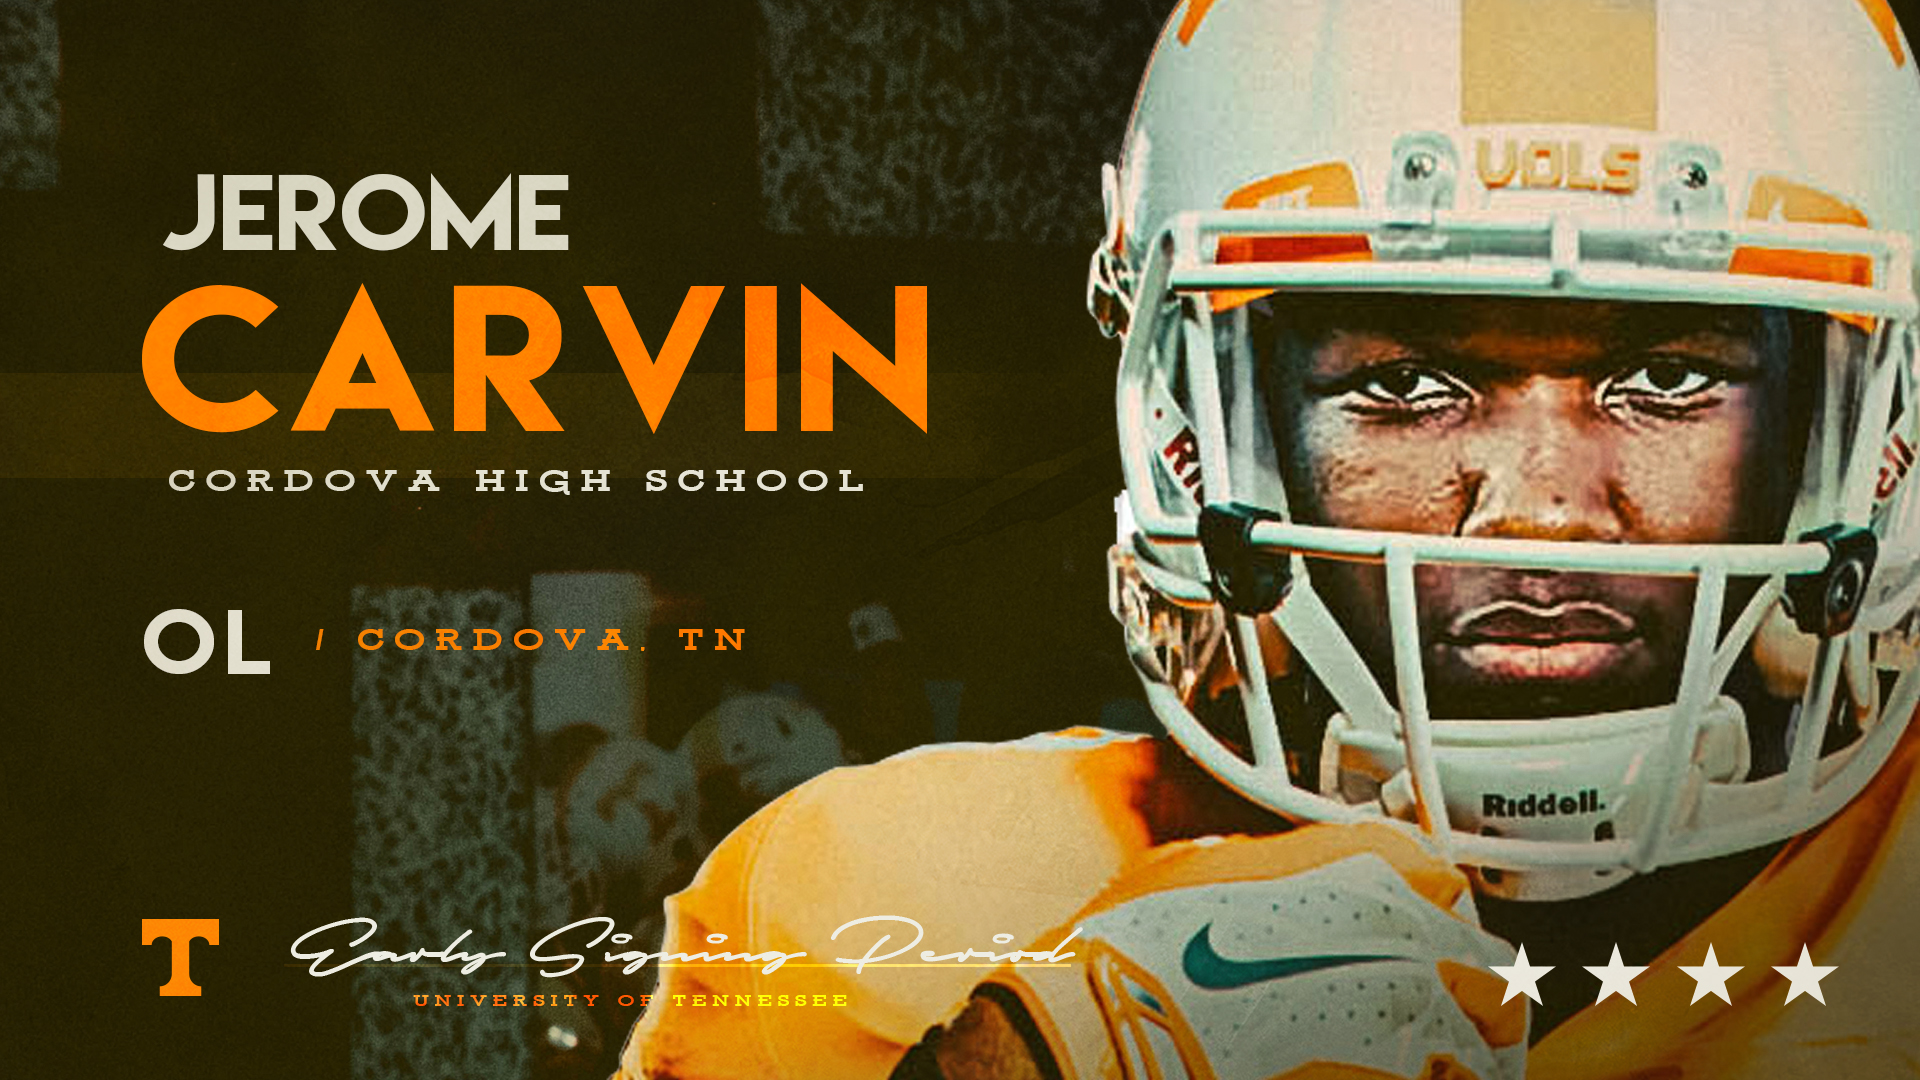 OL Jerome Carvin joins teammate Banks as a UT signee, the 7th